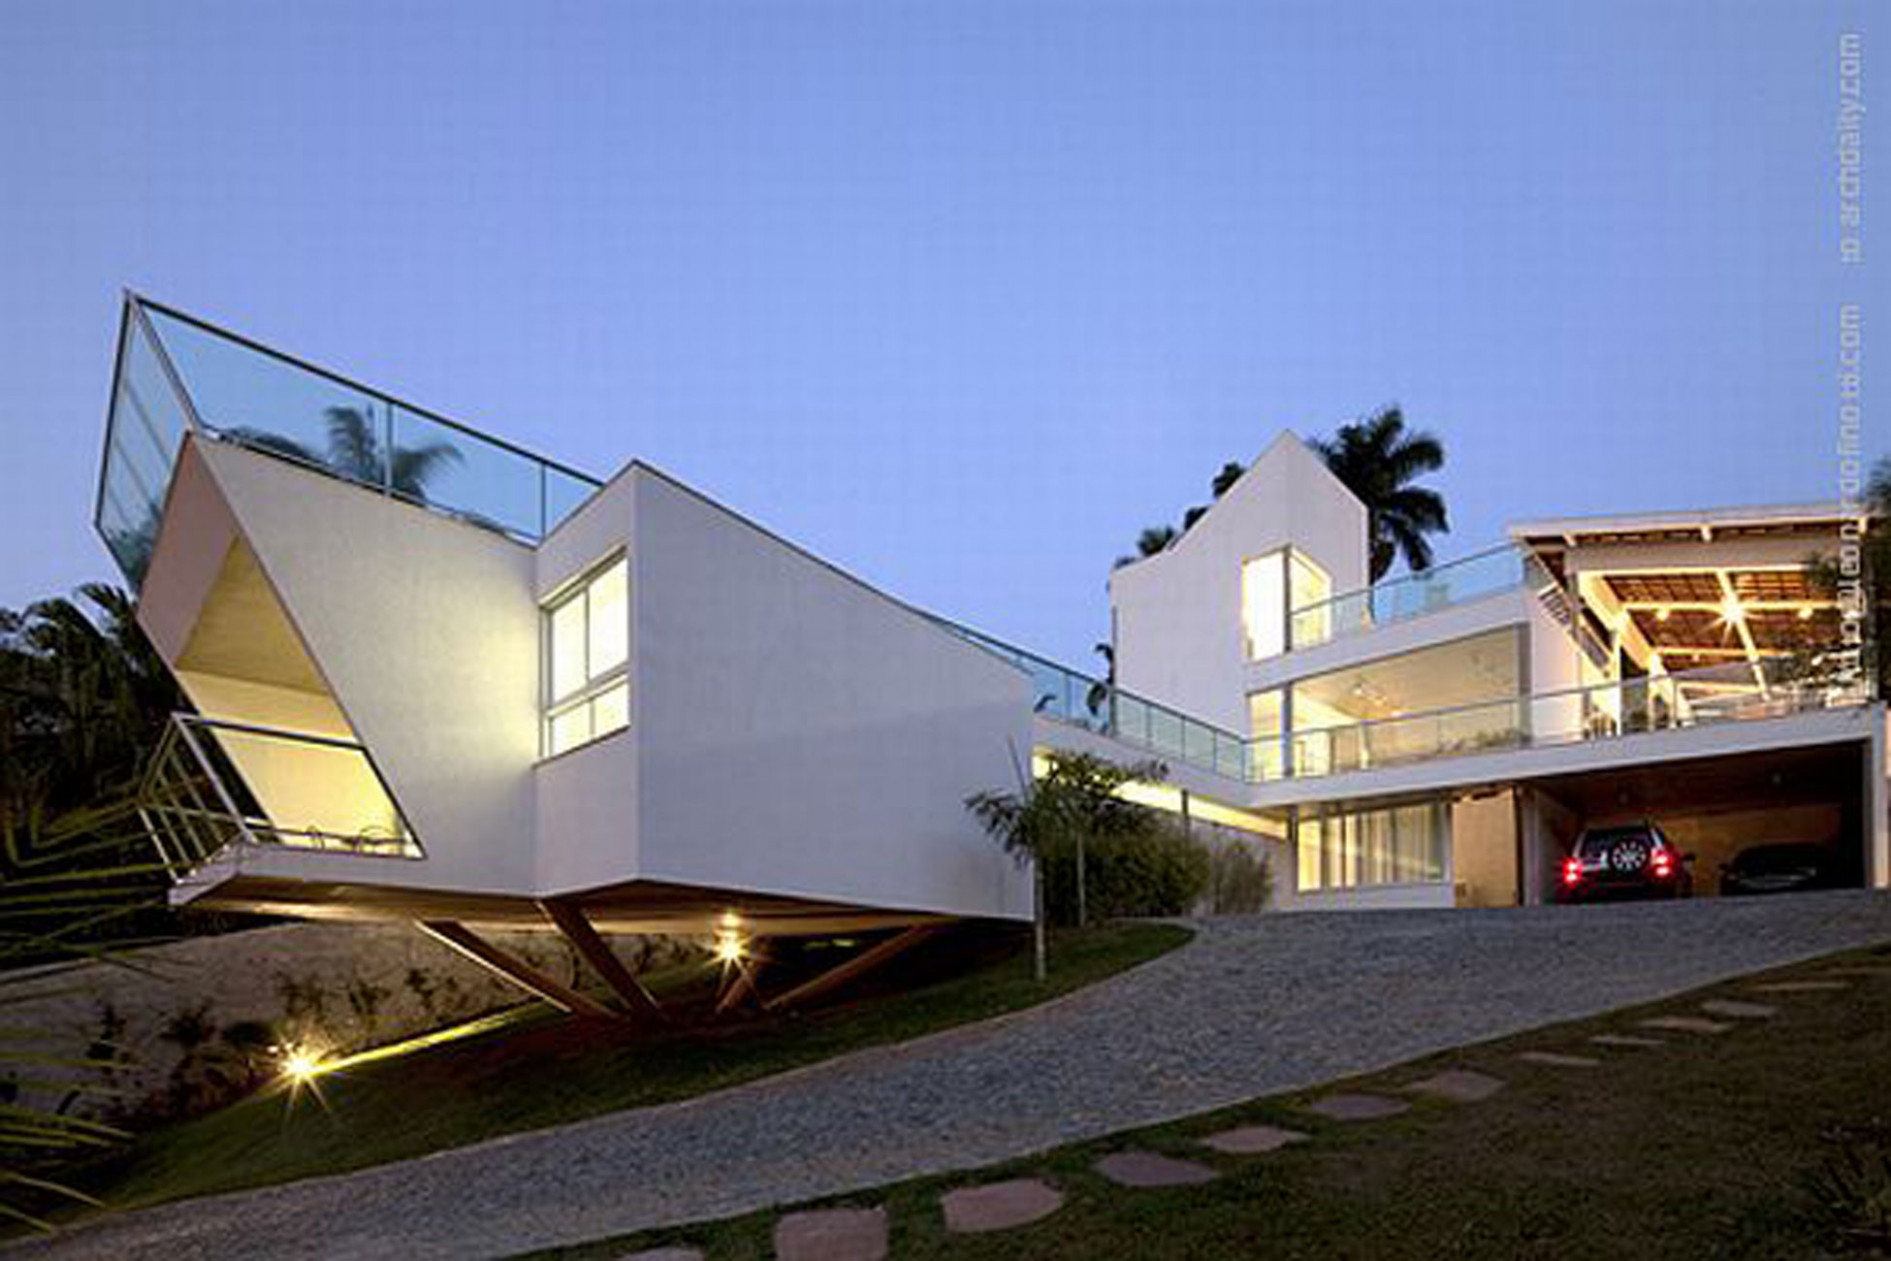 Unusual Architecture From A Modern House In Brazil – Carport Design Carport Modern